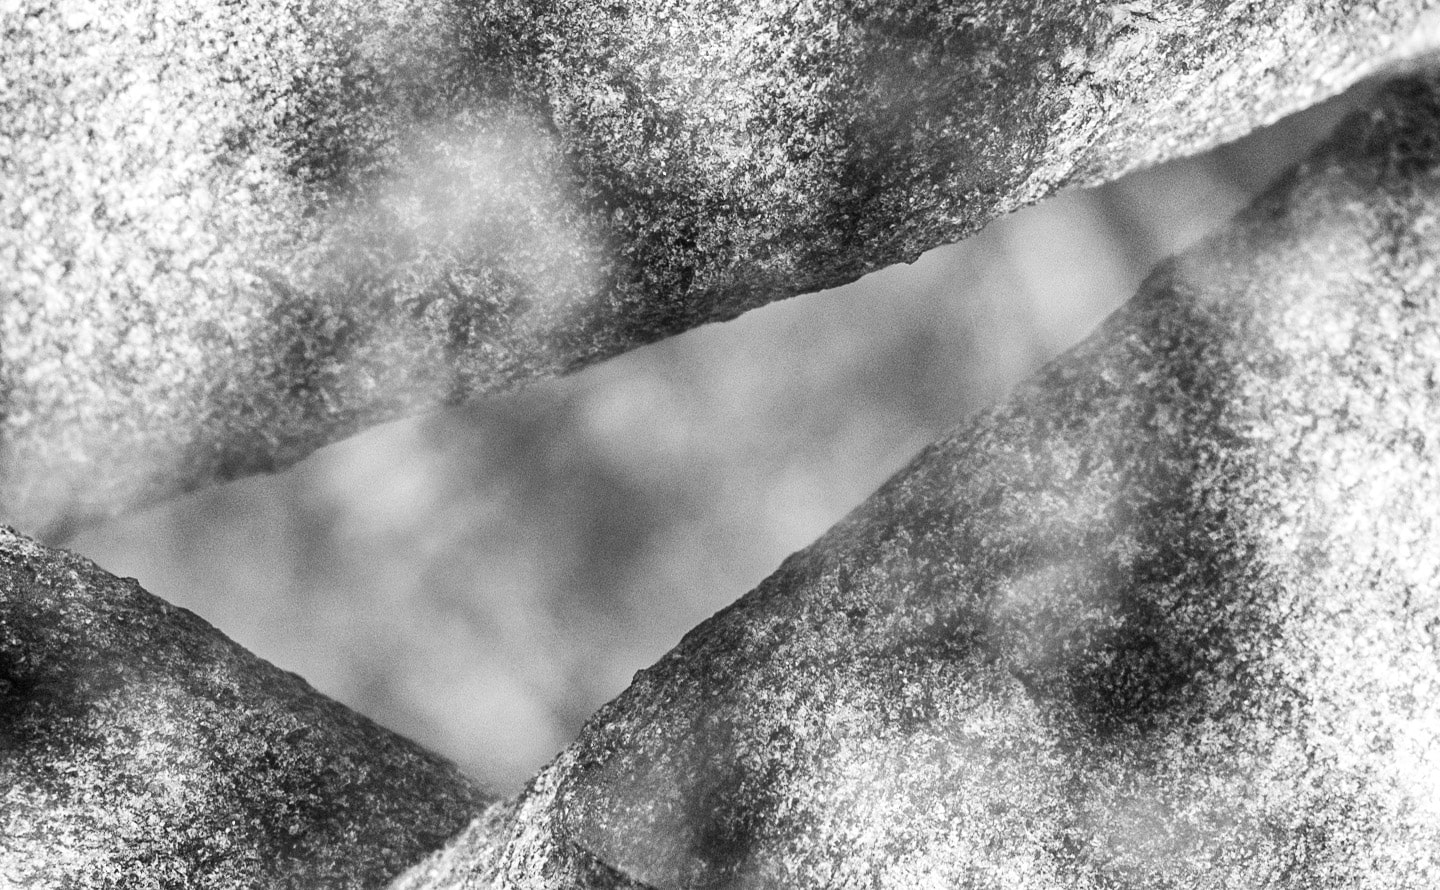 A black and white composite photograph of a rough granite surface in front of a dappled, out-of-focus background. The photograph is copied three times and rotated so the straight edges of stone form a thin obtuse triangle identical to the one described in the text.